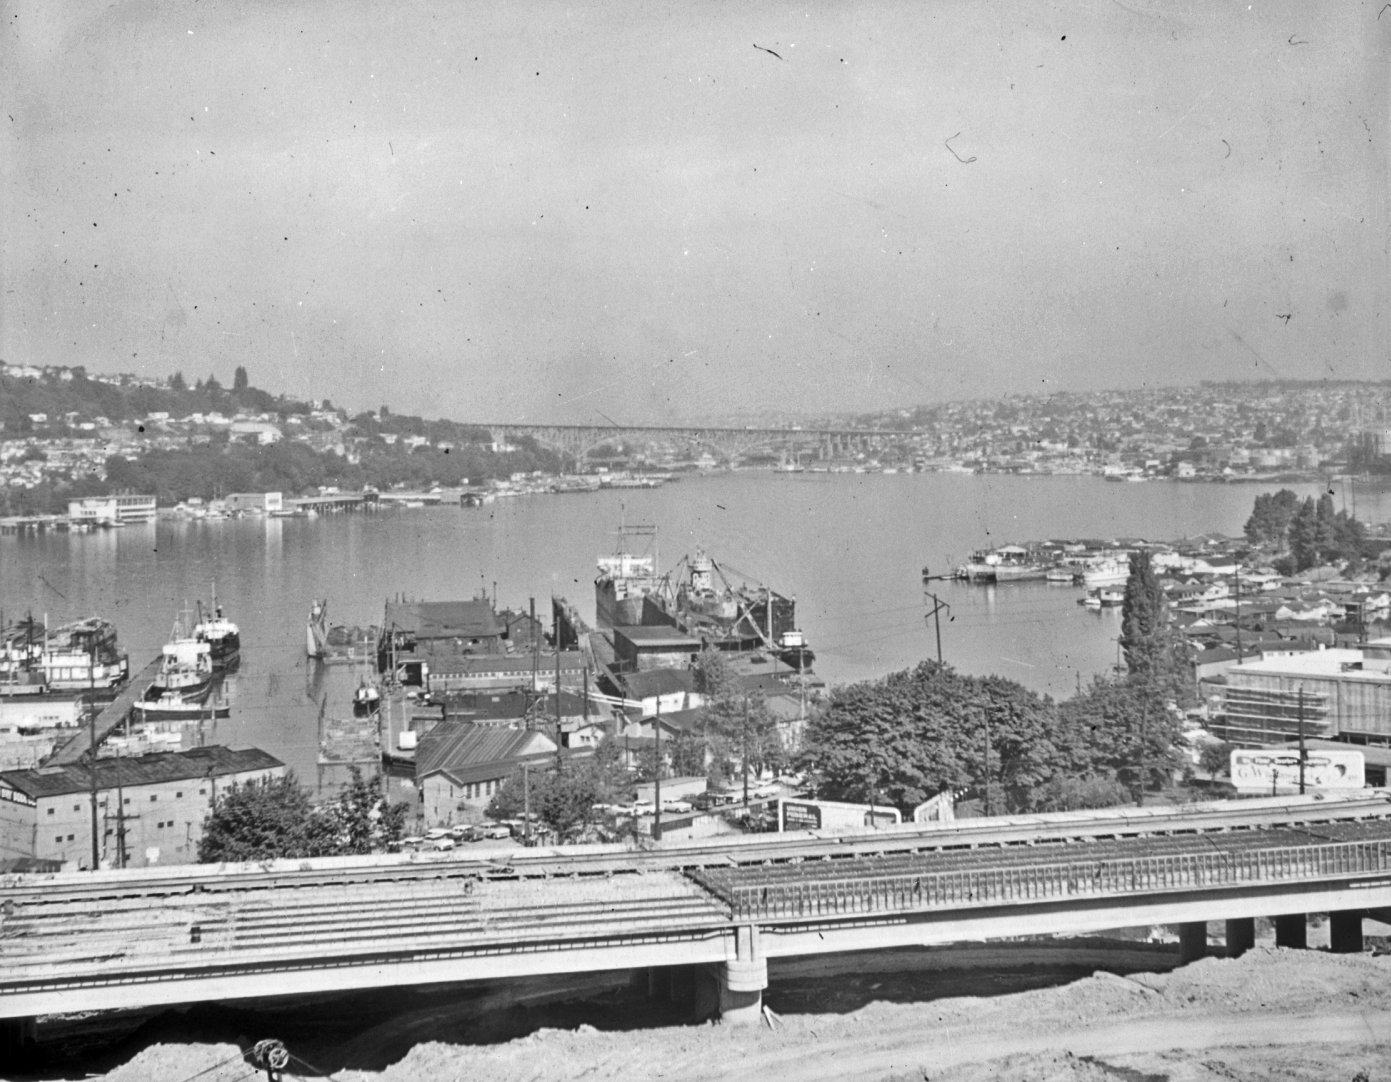 http://upload.wikimedia.org/wikipedia/commons/7/77/Interstate_5_under_construction%2C_Eastlake%2C_Seattle%2C_1962.jpg